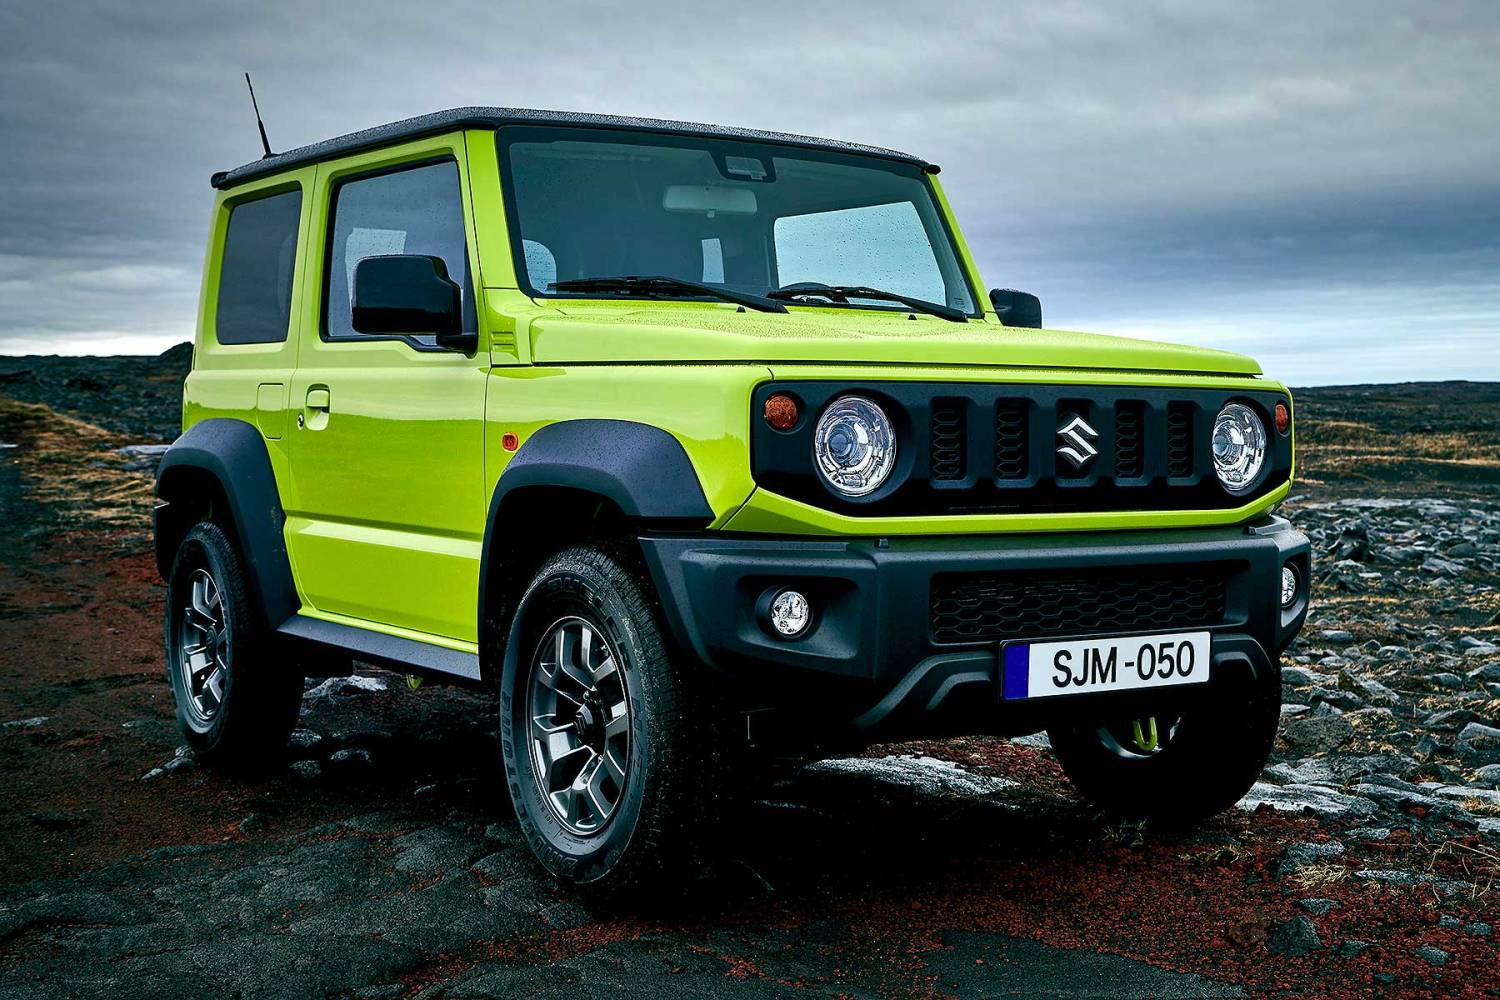 New 2019 Suzuki Jimny prices and specs | Motoring Research